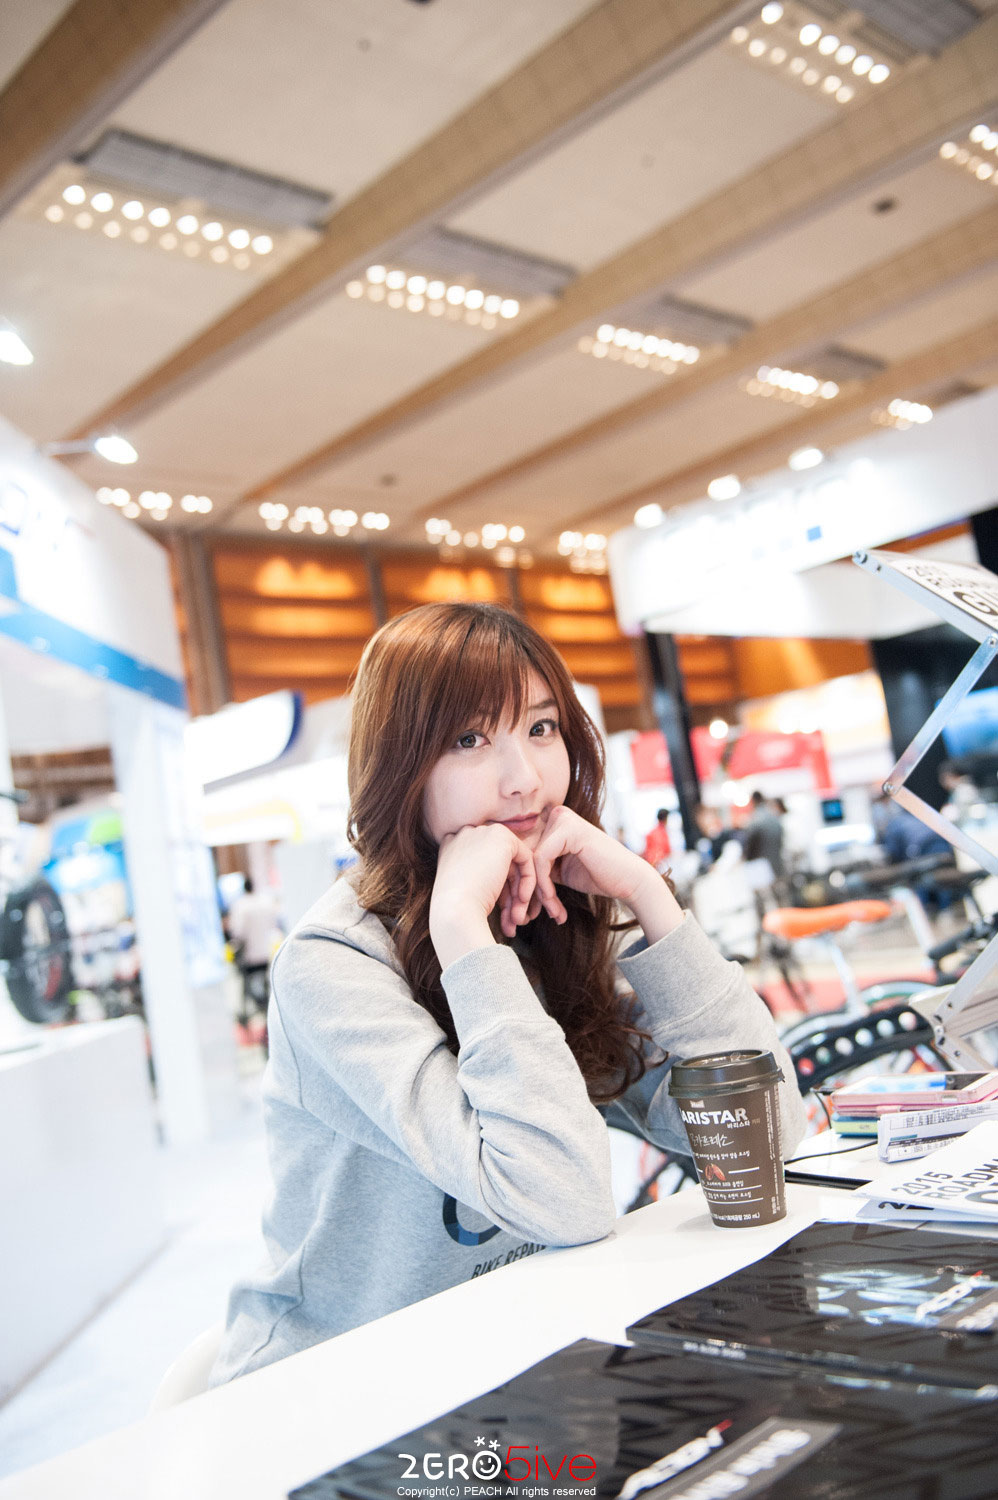 Seo Da-In SPOEX 2015 Bike Repair Shop